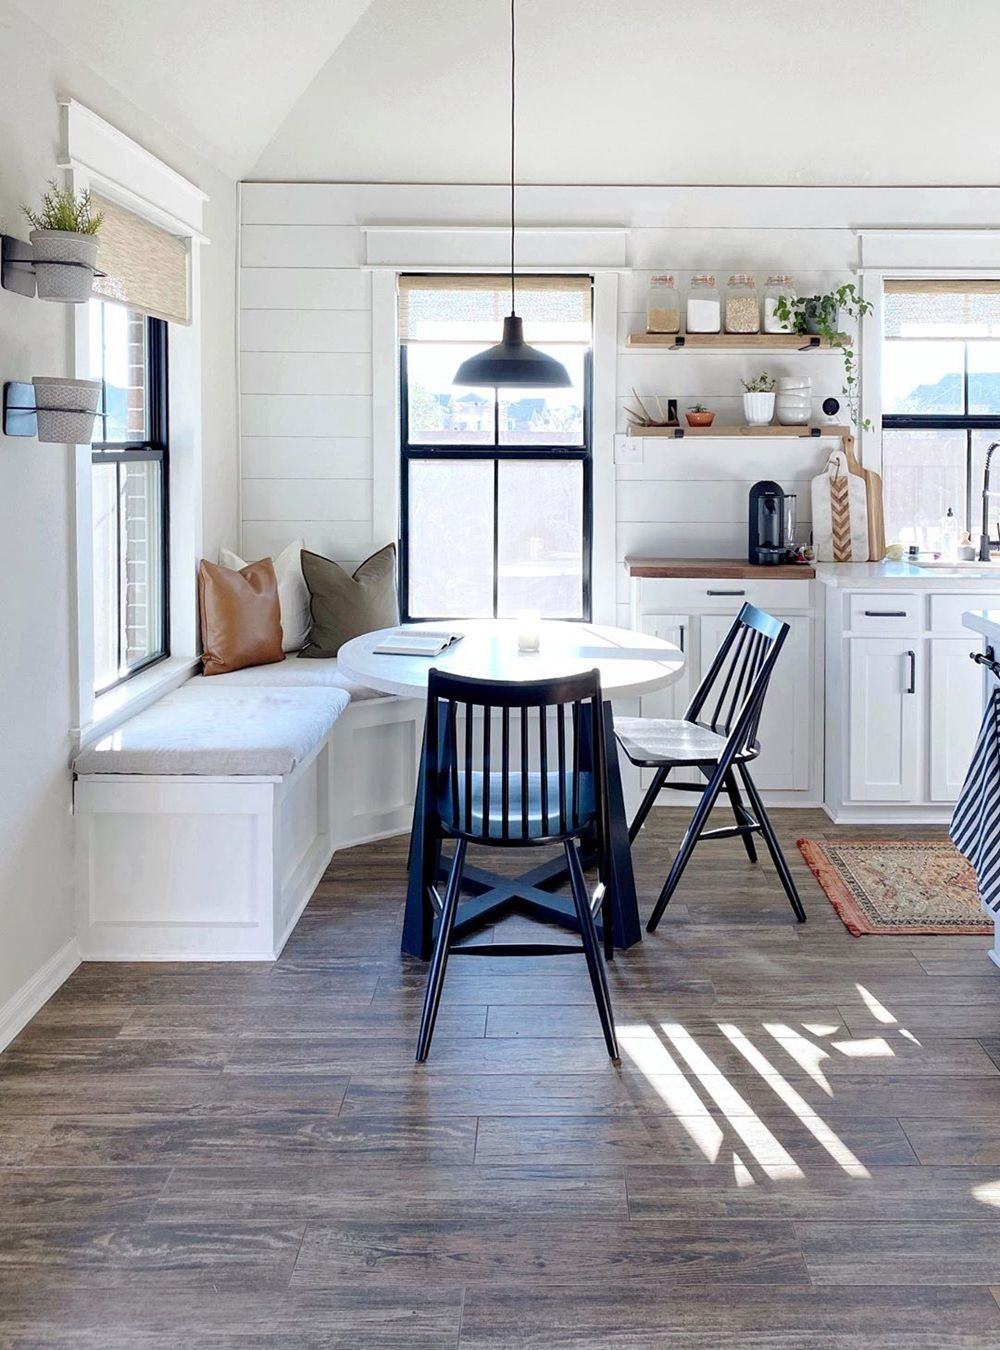 25 Fascinating Kitchen Bench Seating Ideas You Ll Love In 2020 Kitchen Corner Bench Seating Banquette Seating In Kitchen Booth Seating In Kitchen Kitchen window seat ideas